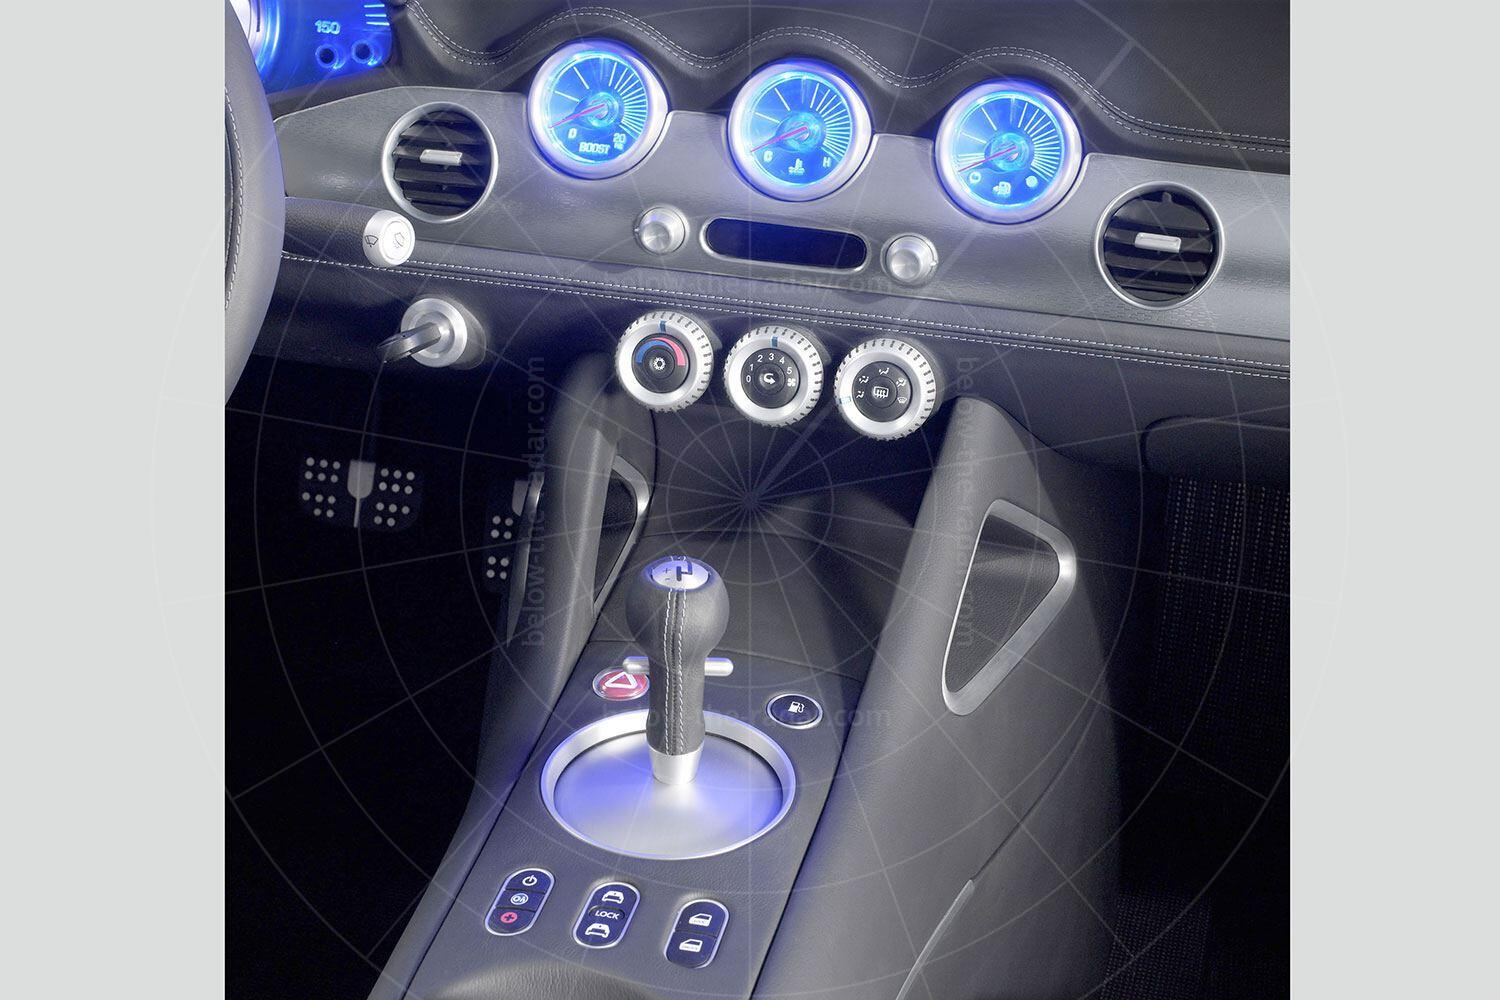 The 2004 Chevrolet Nomad concept - dashboard Pic: GM | The 2004 Chevrolet Nomad concept - dashboard